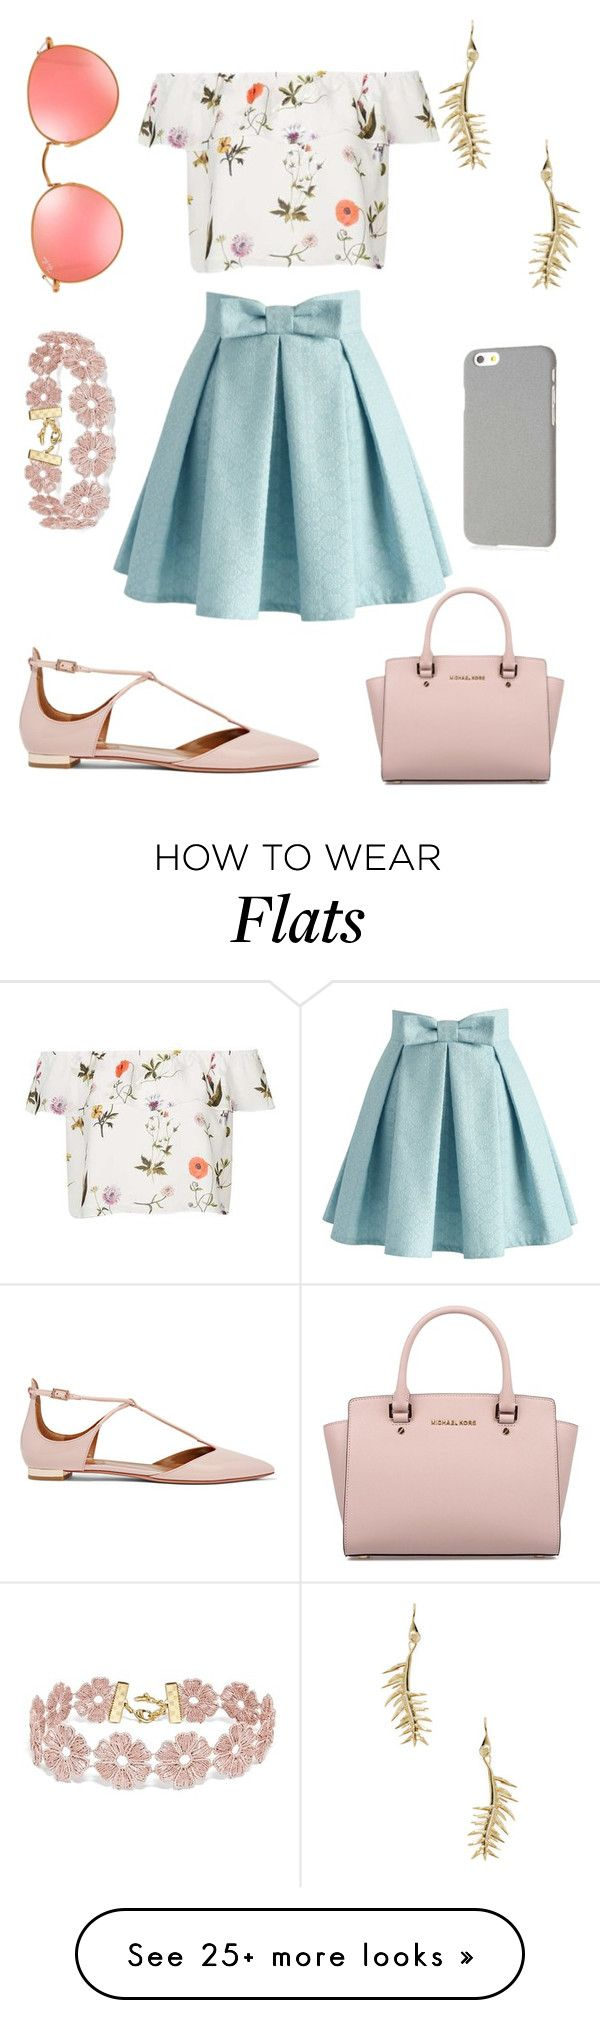 """Untitled #58"" by neirak on Polyvore featuring Topshop, Aquazzura, Eddie Borgo, Chicwish, BaubleBar, Ray-Ban, Klix and Michael Kors"